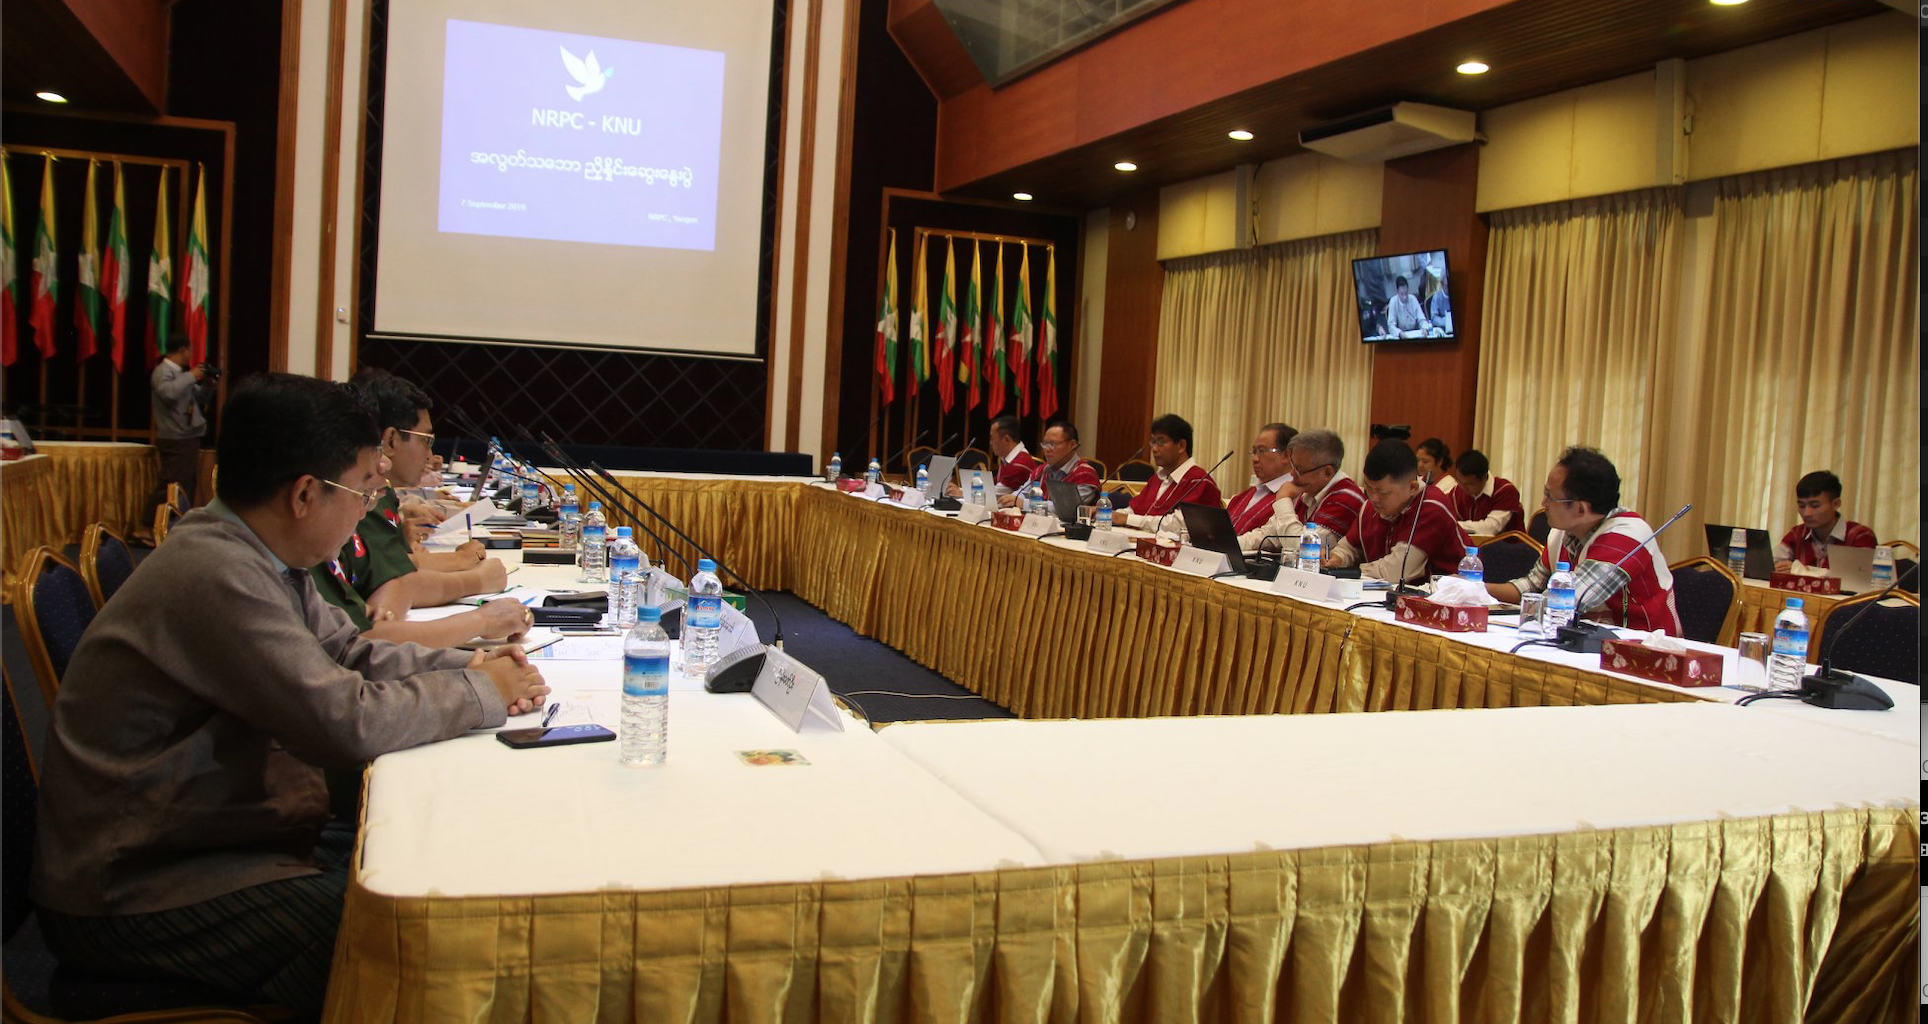 Photo of KNU – NRPC's Demand for Approval of Foreign Aid Creates Tension, Risks EAOs Projects and Mutual Trust